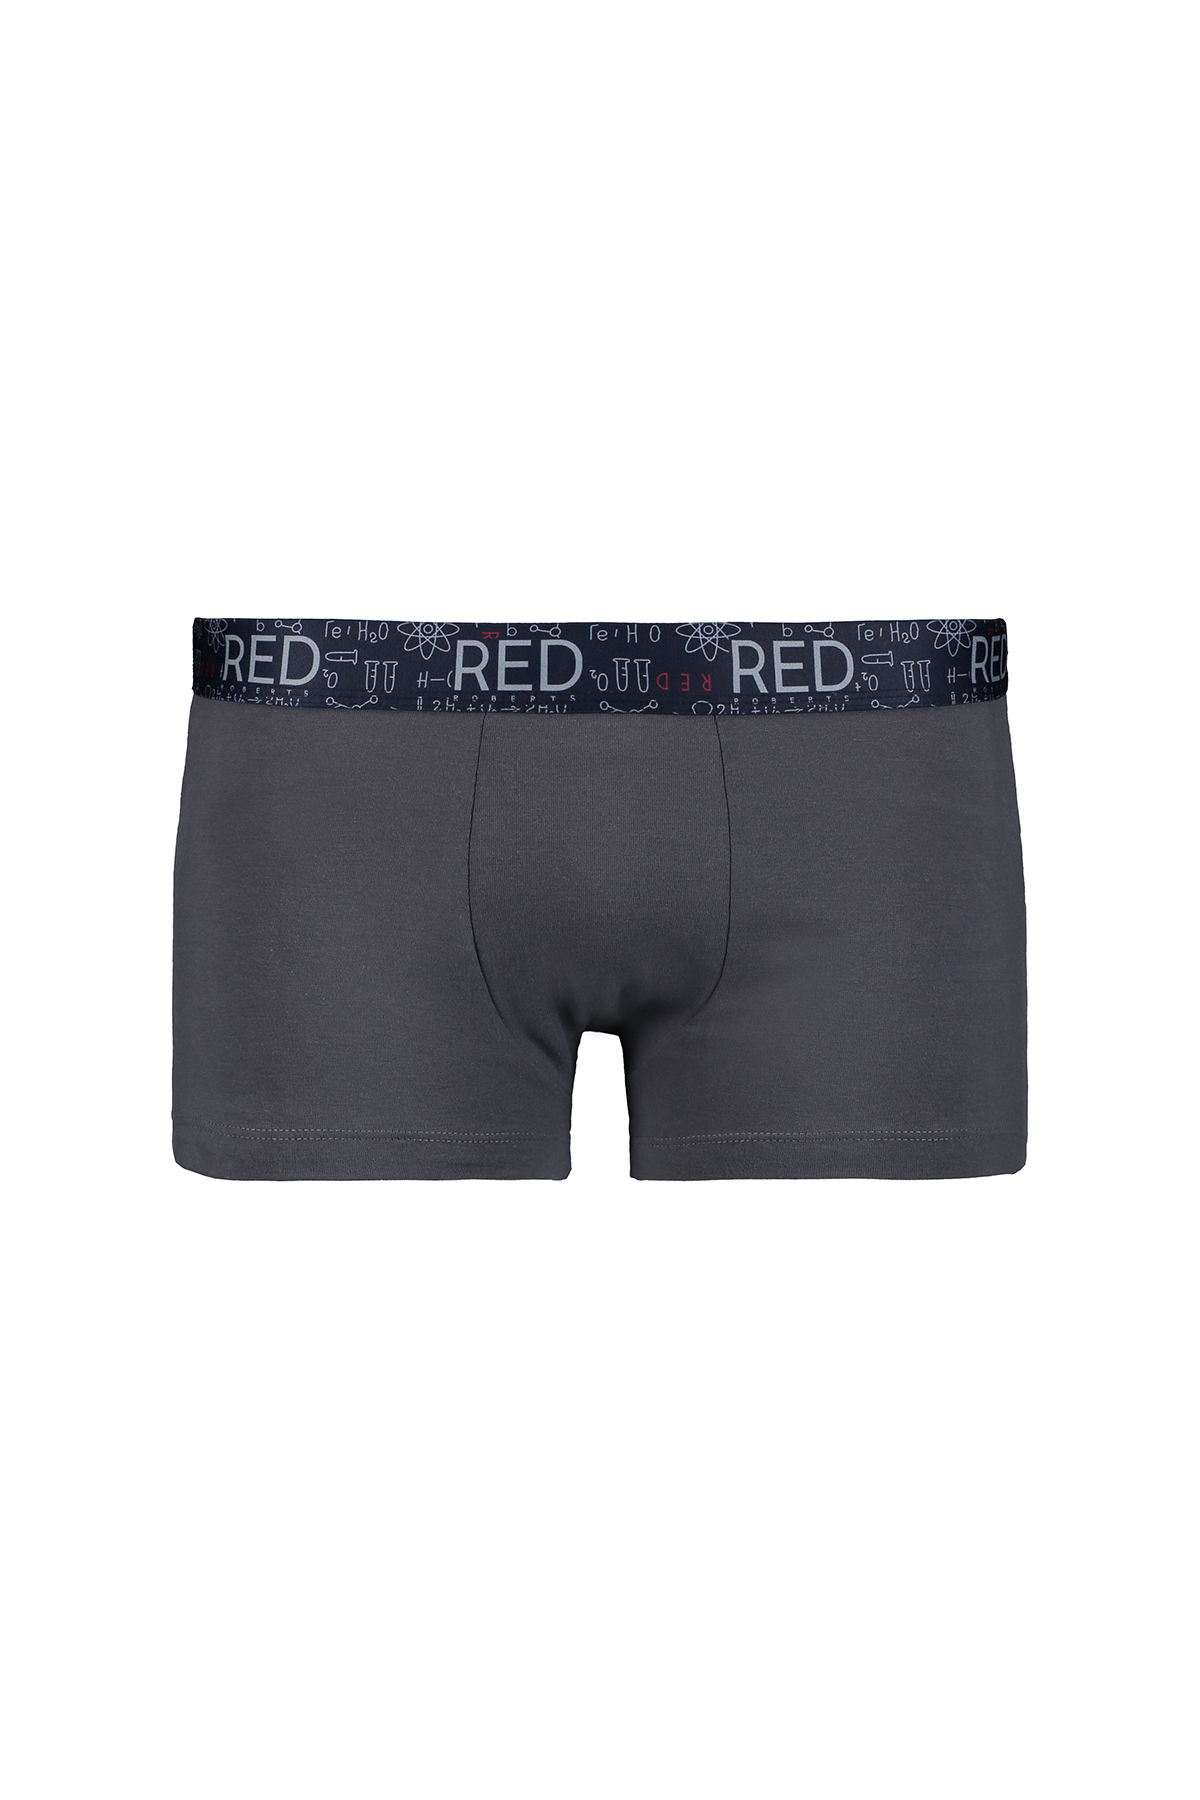 Boxers marca RED color gris y azul estampado.